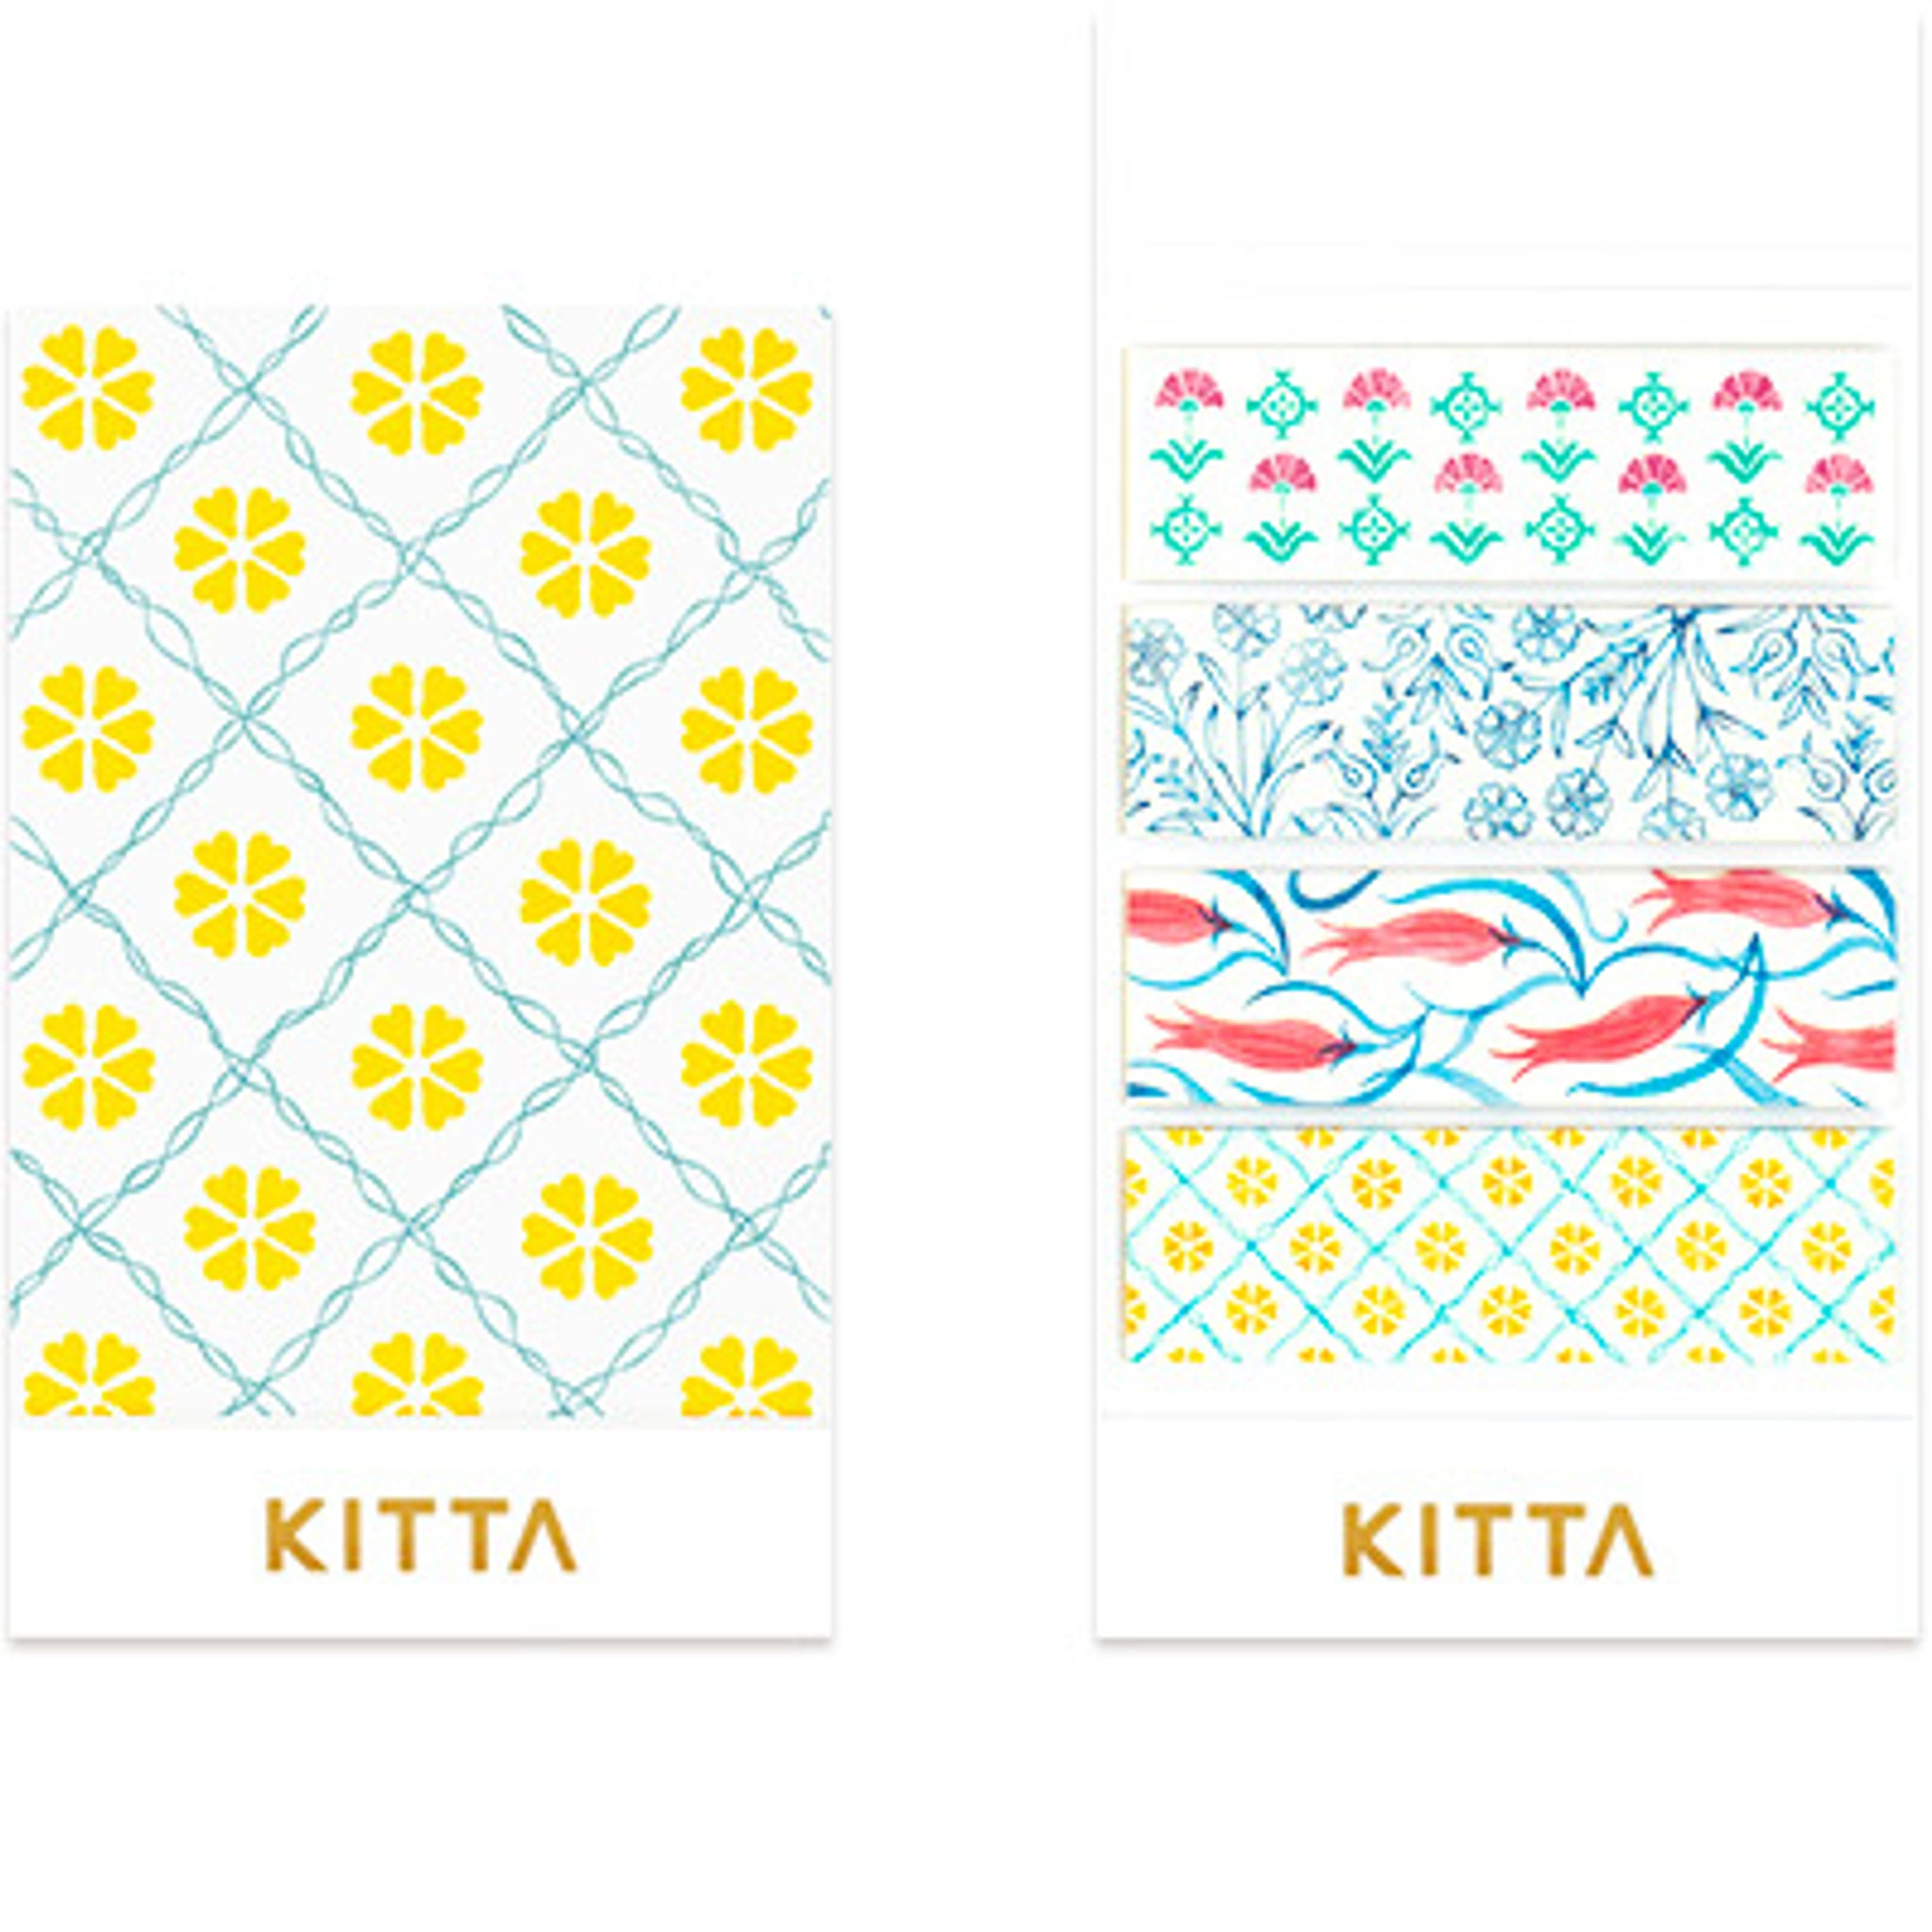 KITTA Washi Tape Arabesque